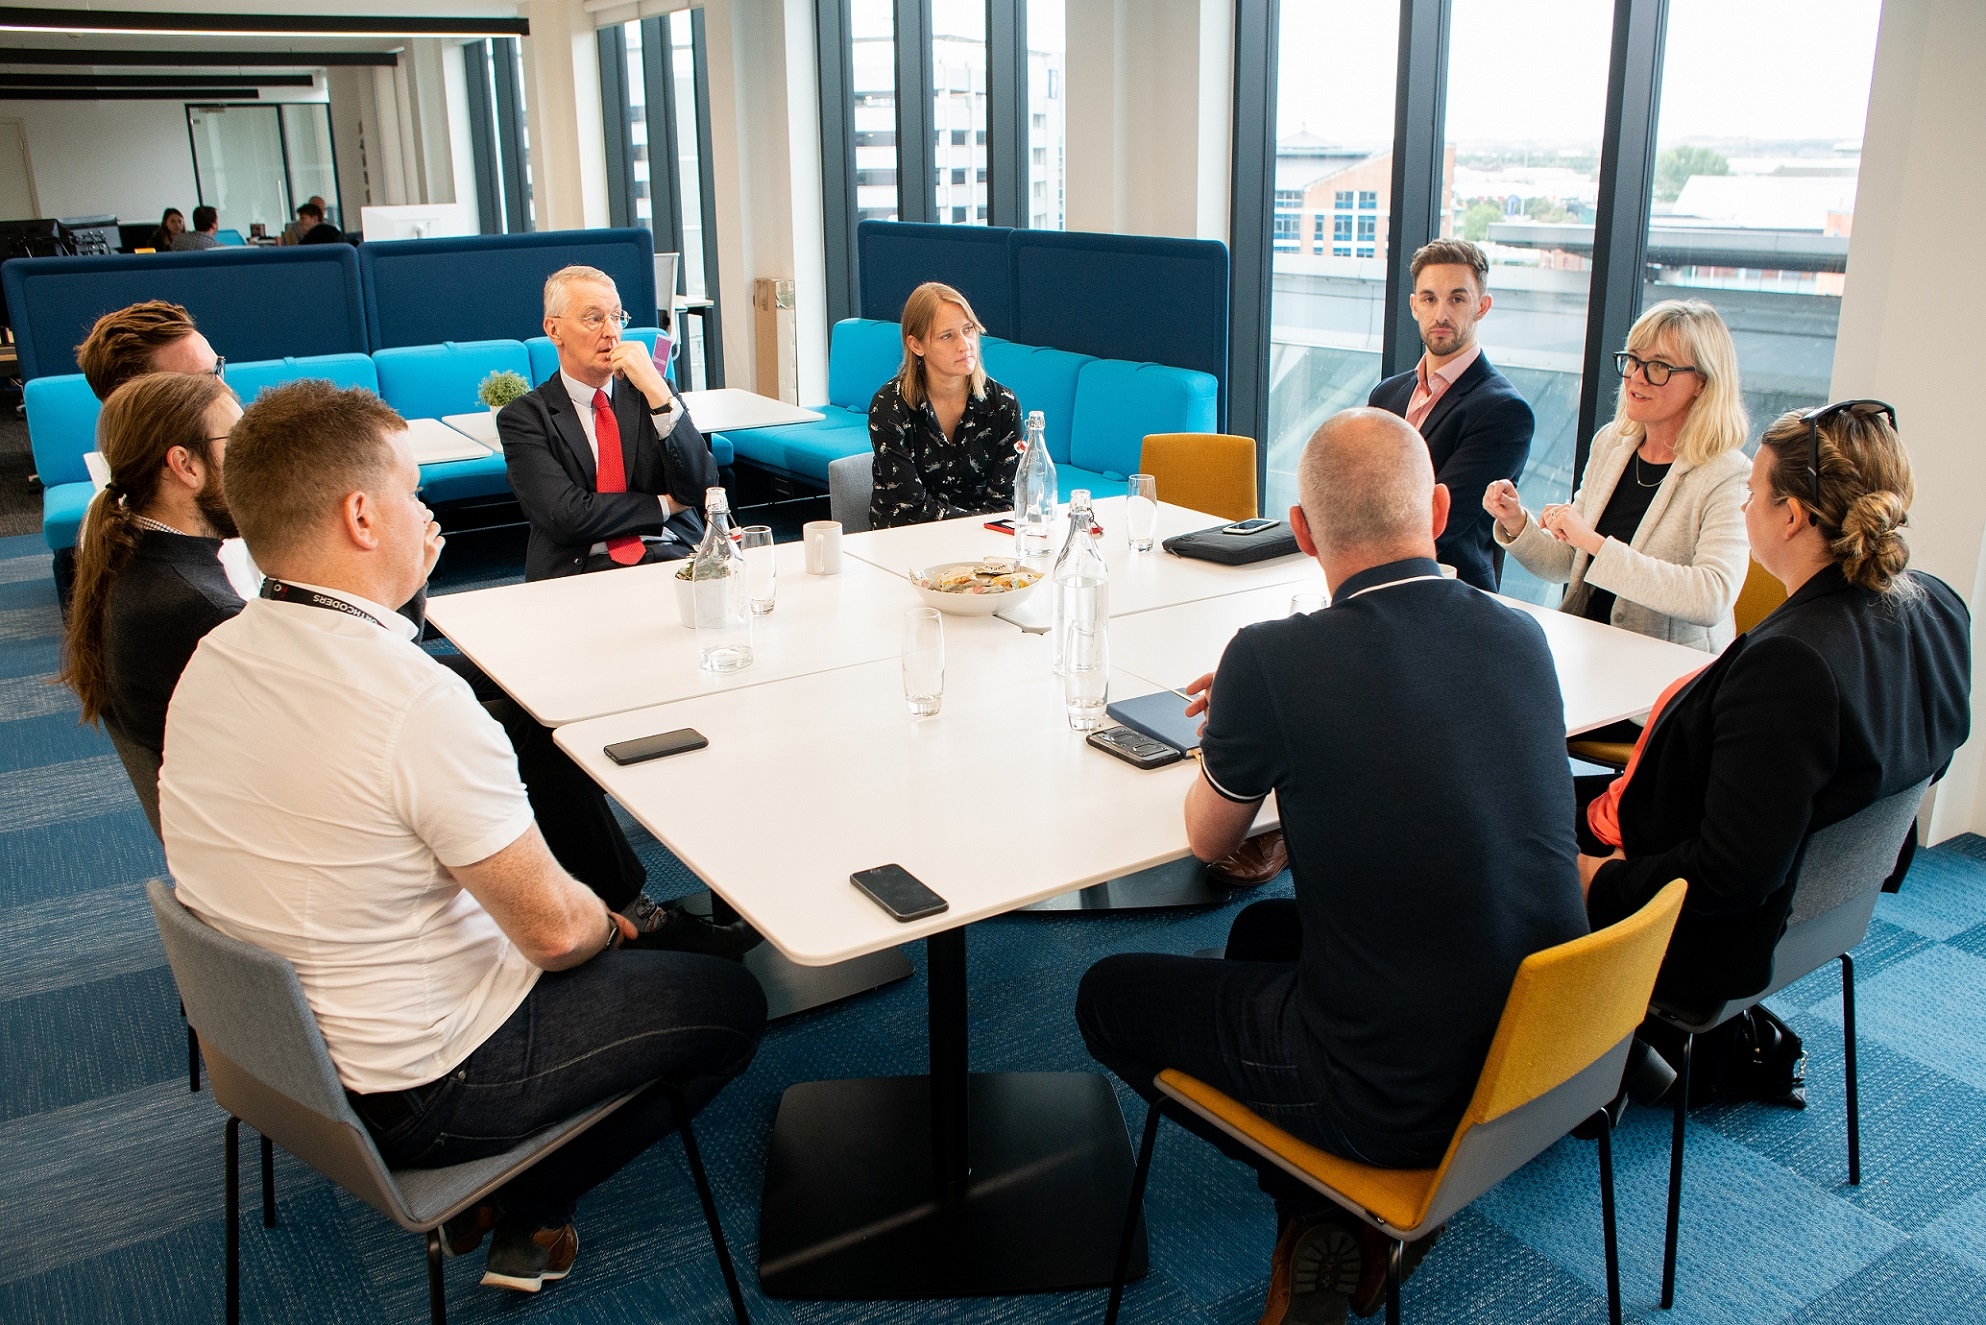 Hilary Benn MP participates in a roundtable discussion during his visit to Platform